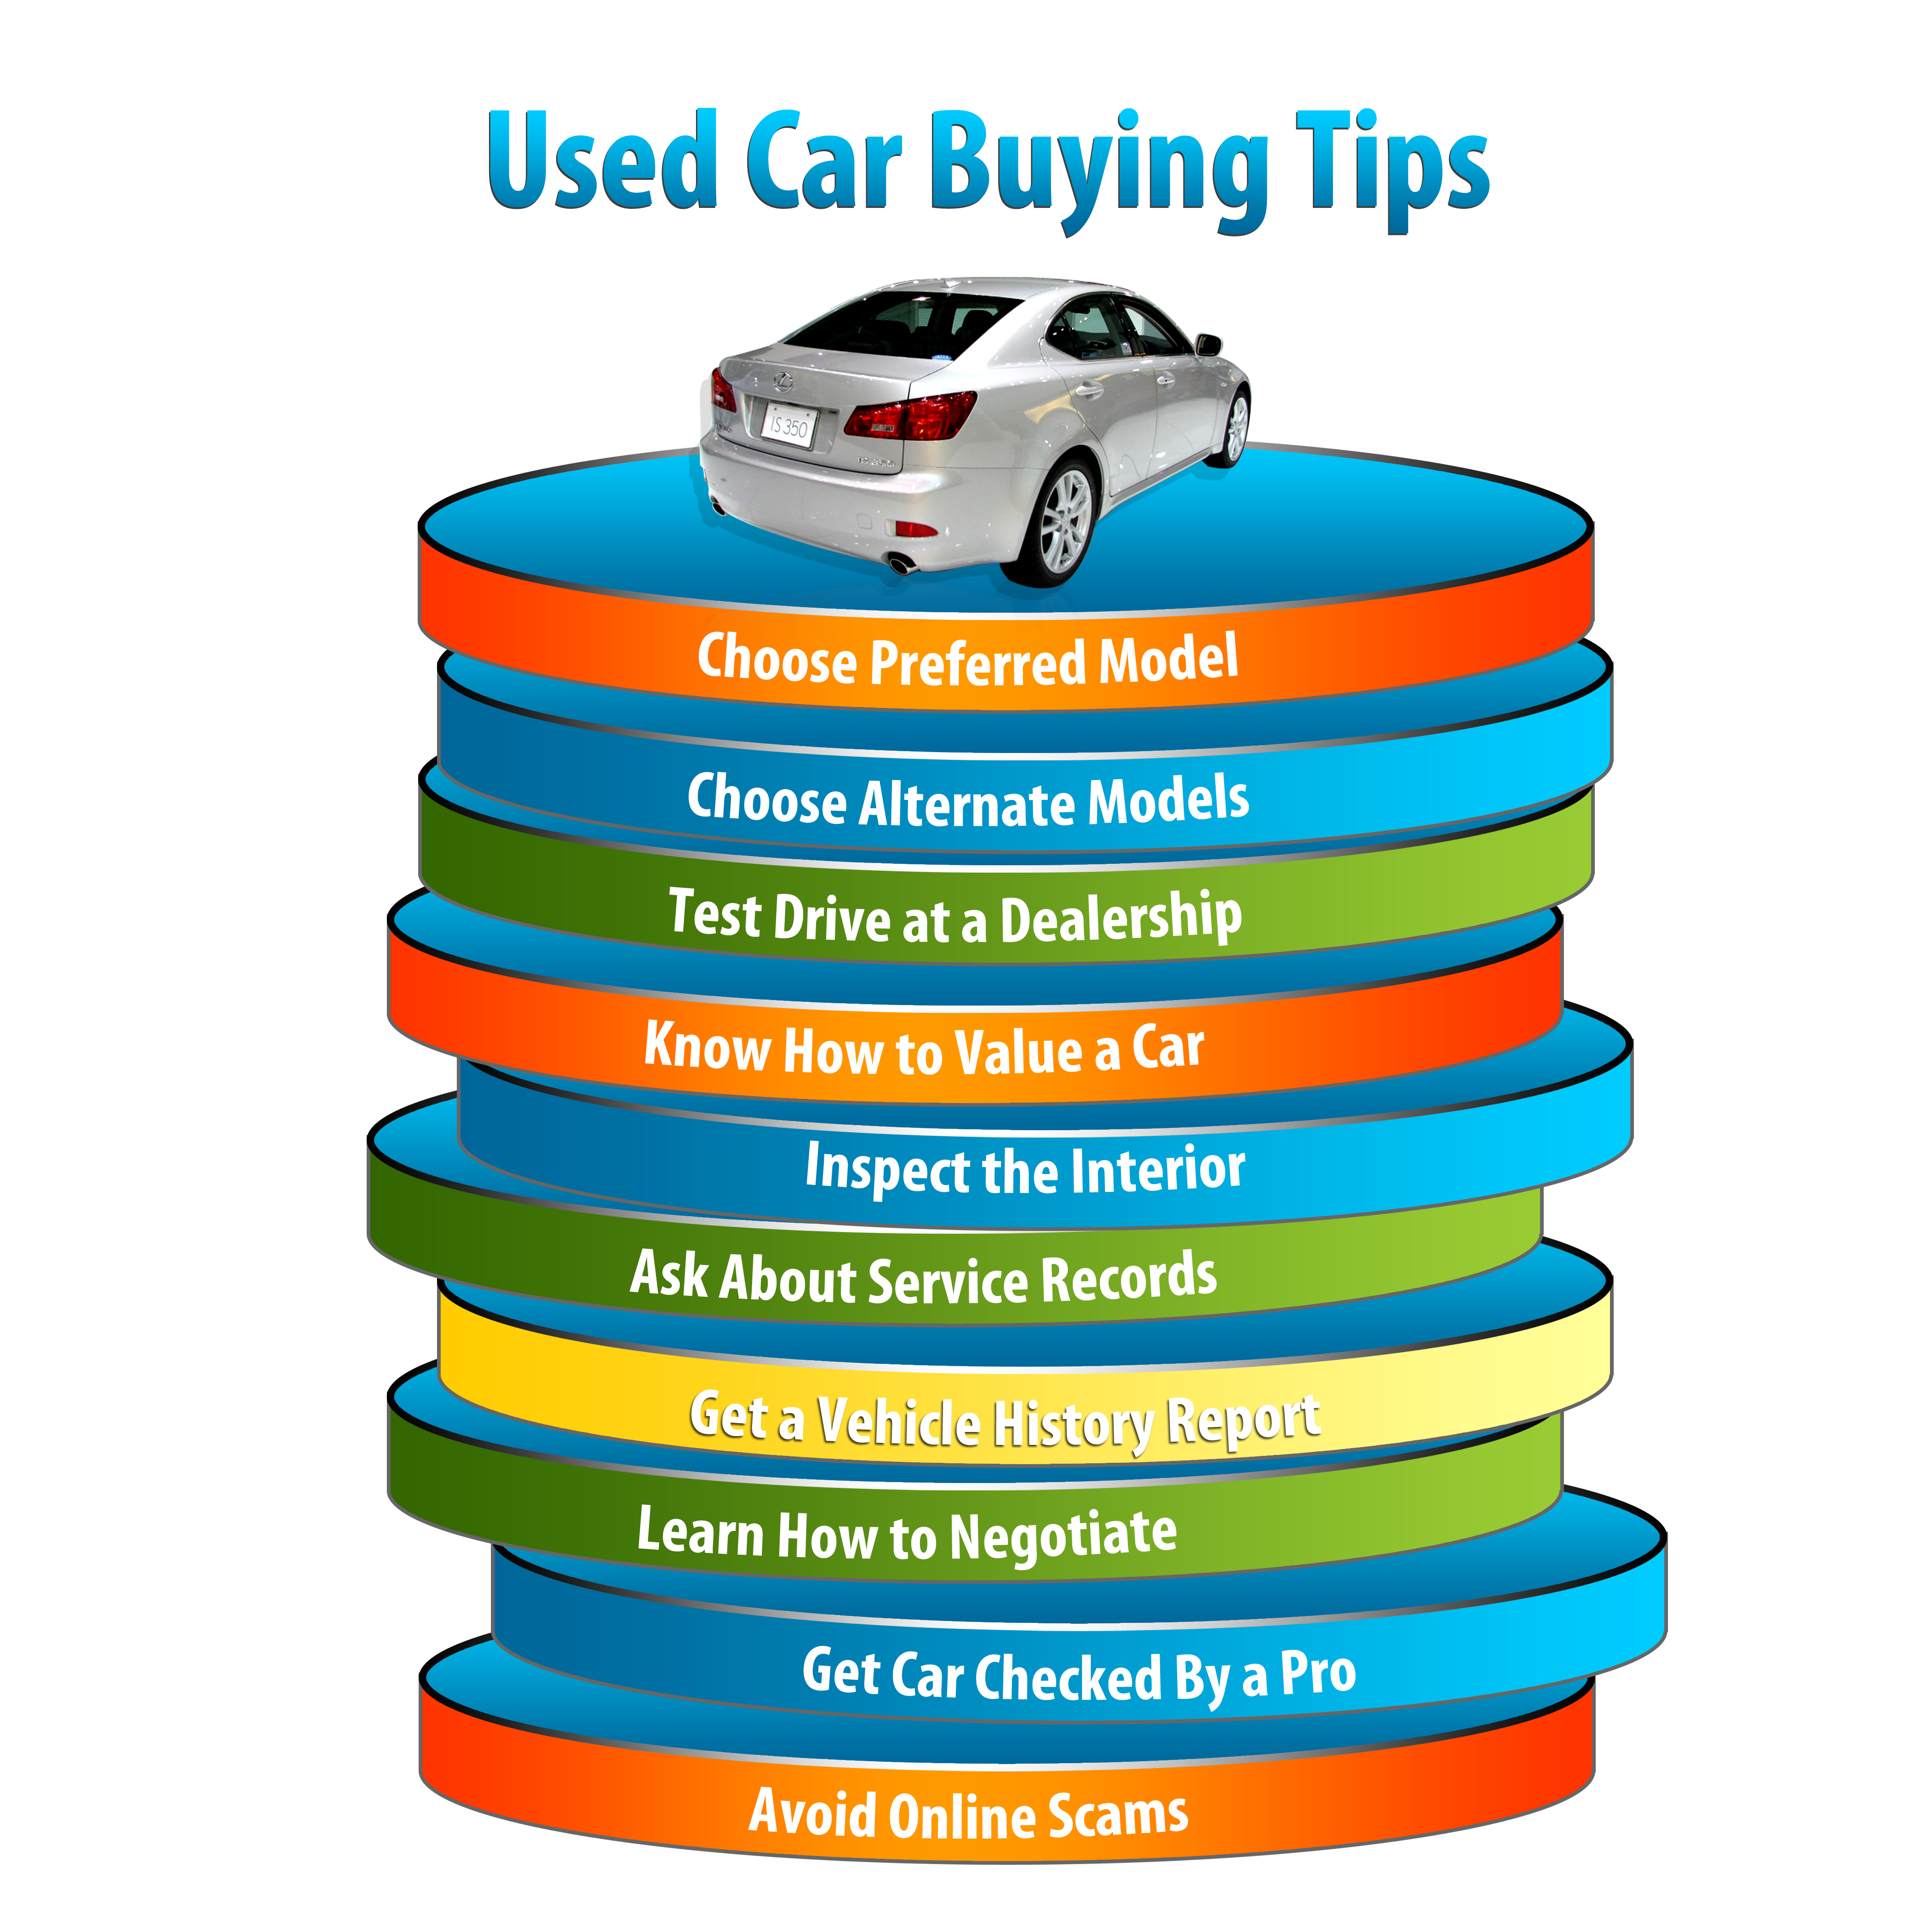 Tips for Buying a Used Car | JobsAmerica.info